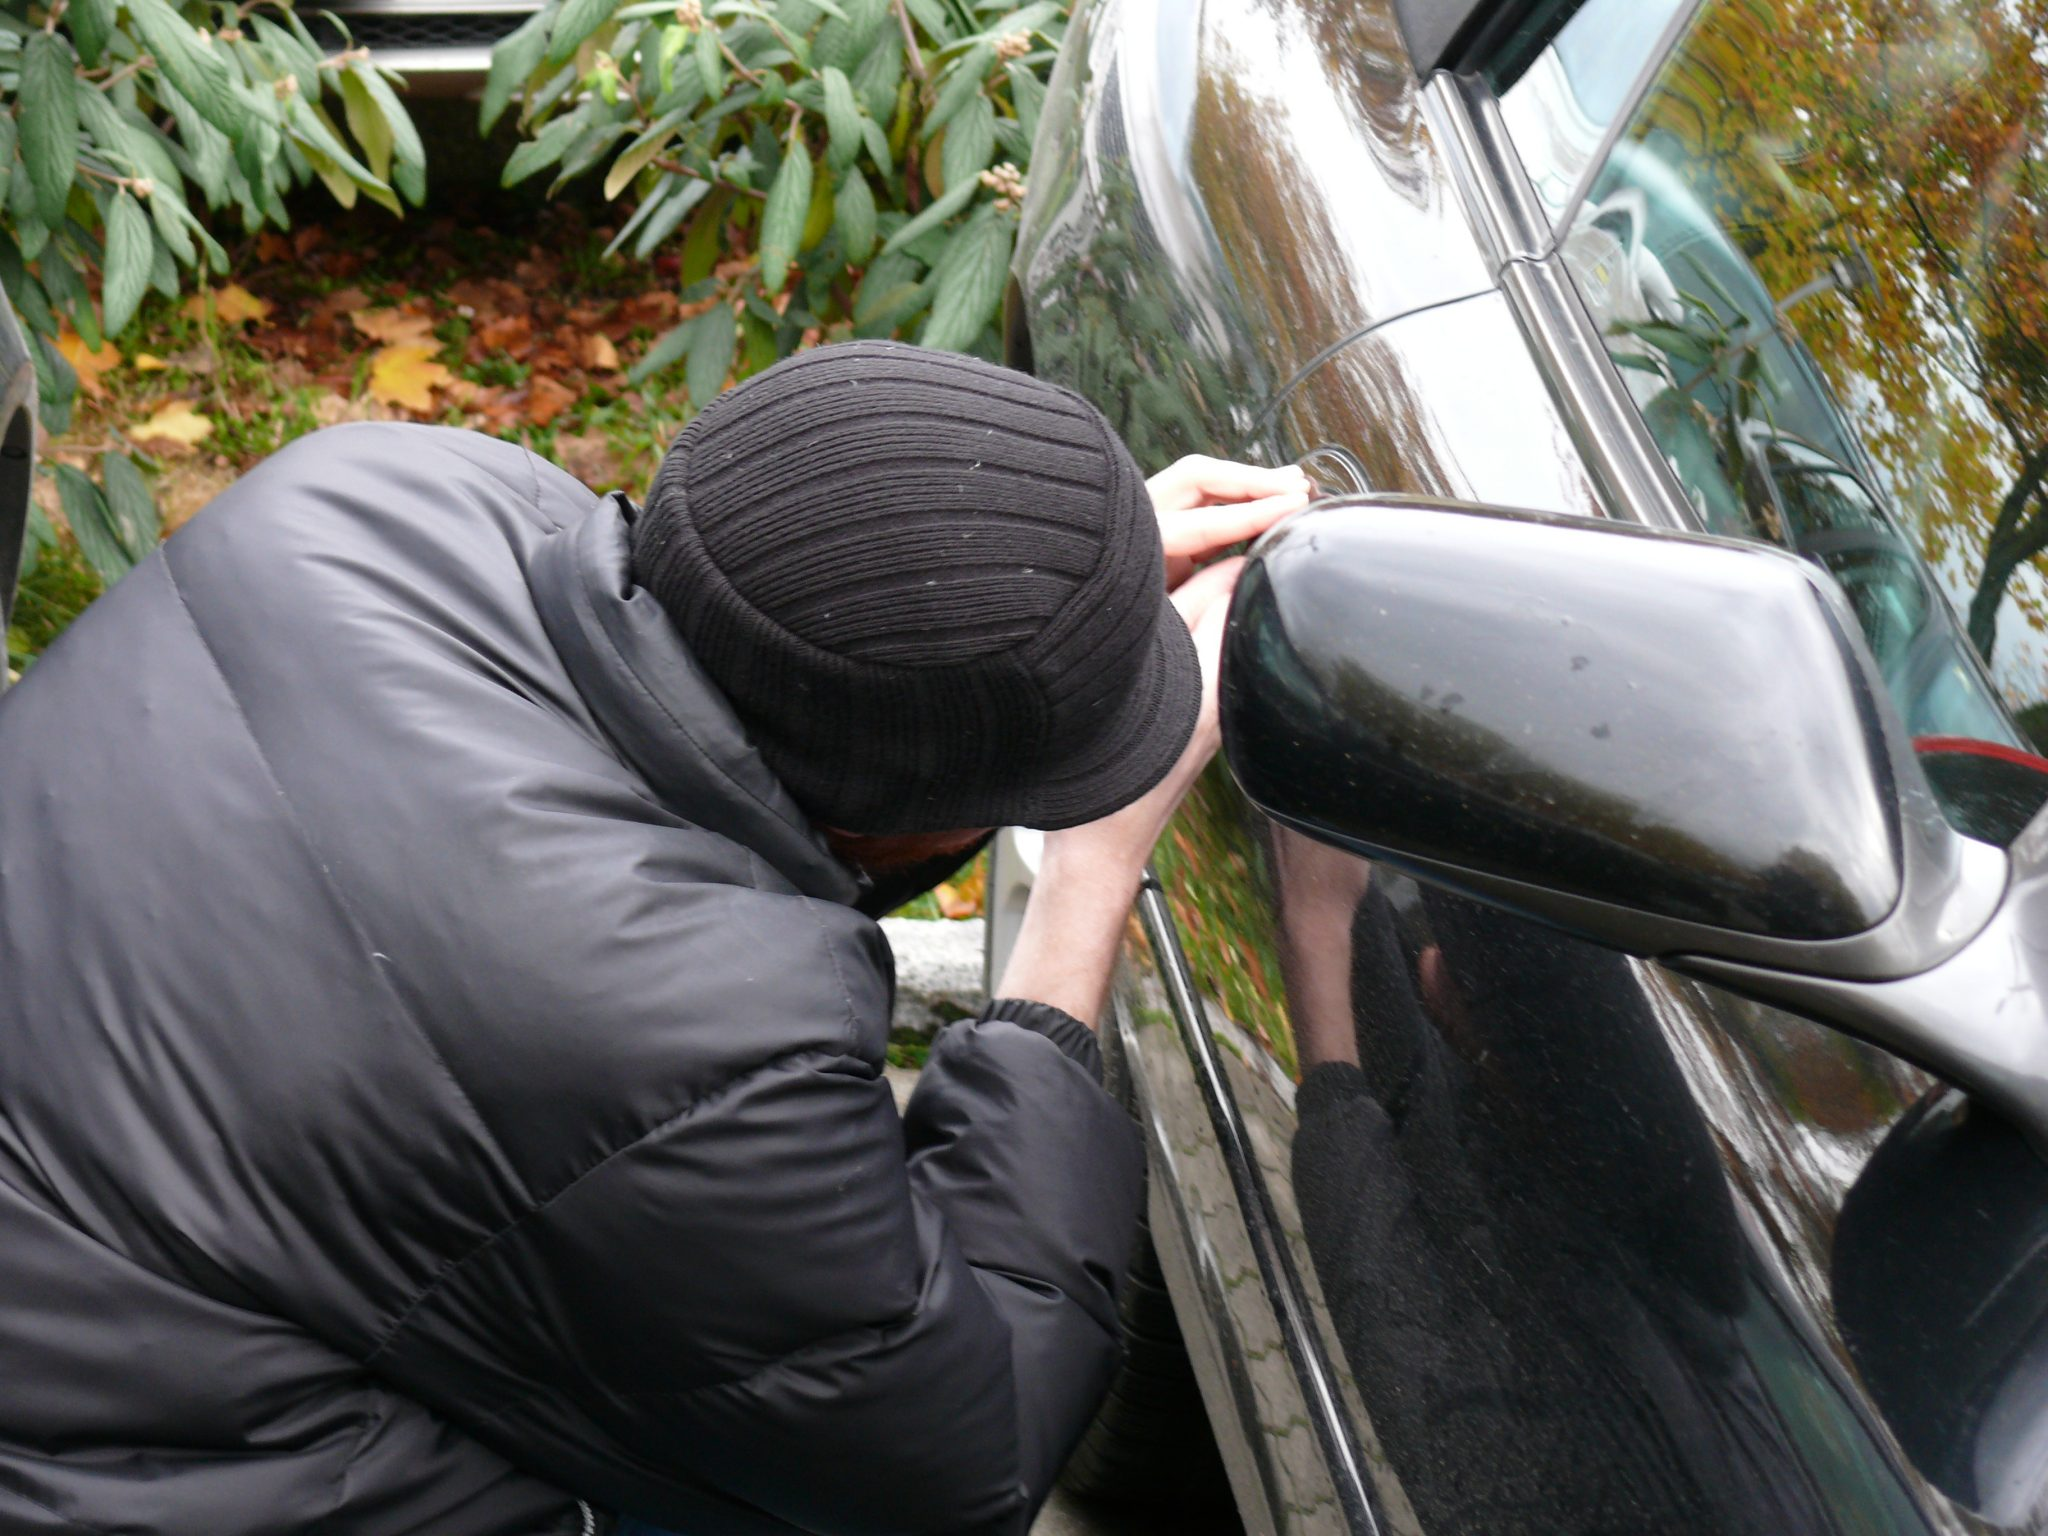 leaving valuables in your vehicles, pro locksmith, pro locksmith san diego, pro locksmiths, lock smith san diego, locksmiths san diego, locksmith san diego, Locksmith, Locksmith near me, san diego locksmith, san diego locksmiths, ring doorbell installation, auto locksmith san diego, san diego auto locksmith, car locksmith san diego, locksmith el cajon, locksmith chula vista, cheap locksmith, 24 hour car locksmith, auto locksmith, Lock repair, commercial locksmith, lock out services, emergency locksmith, emergency locksmith services